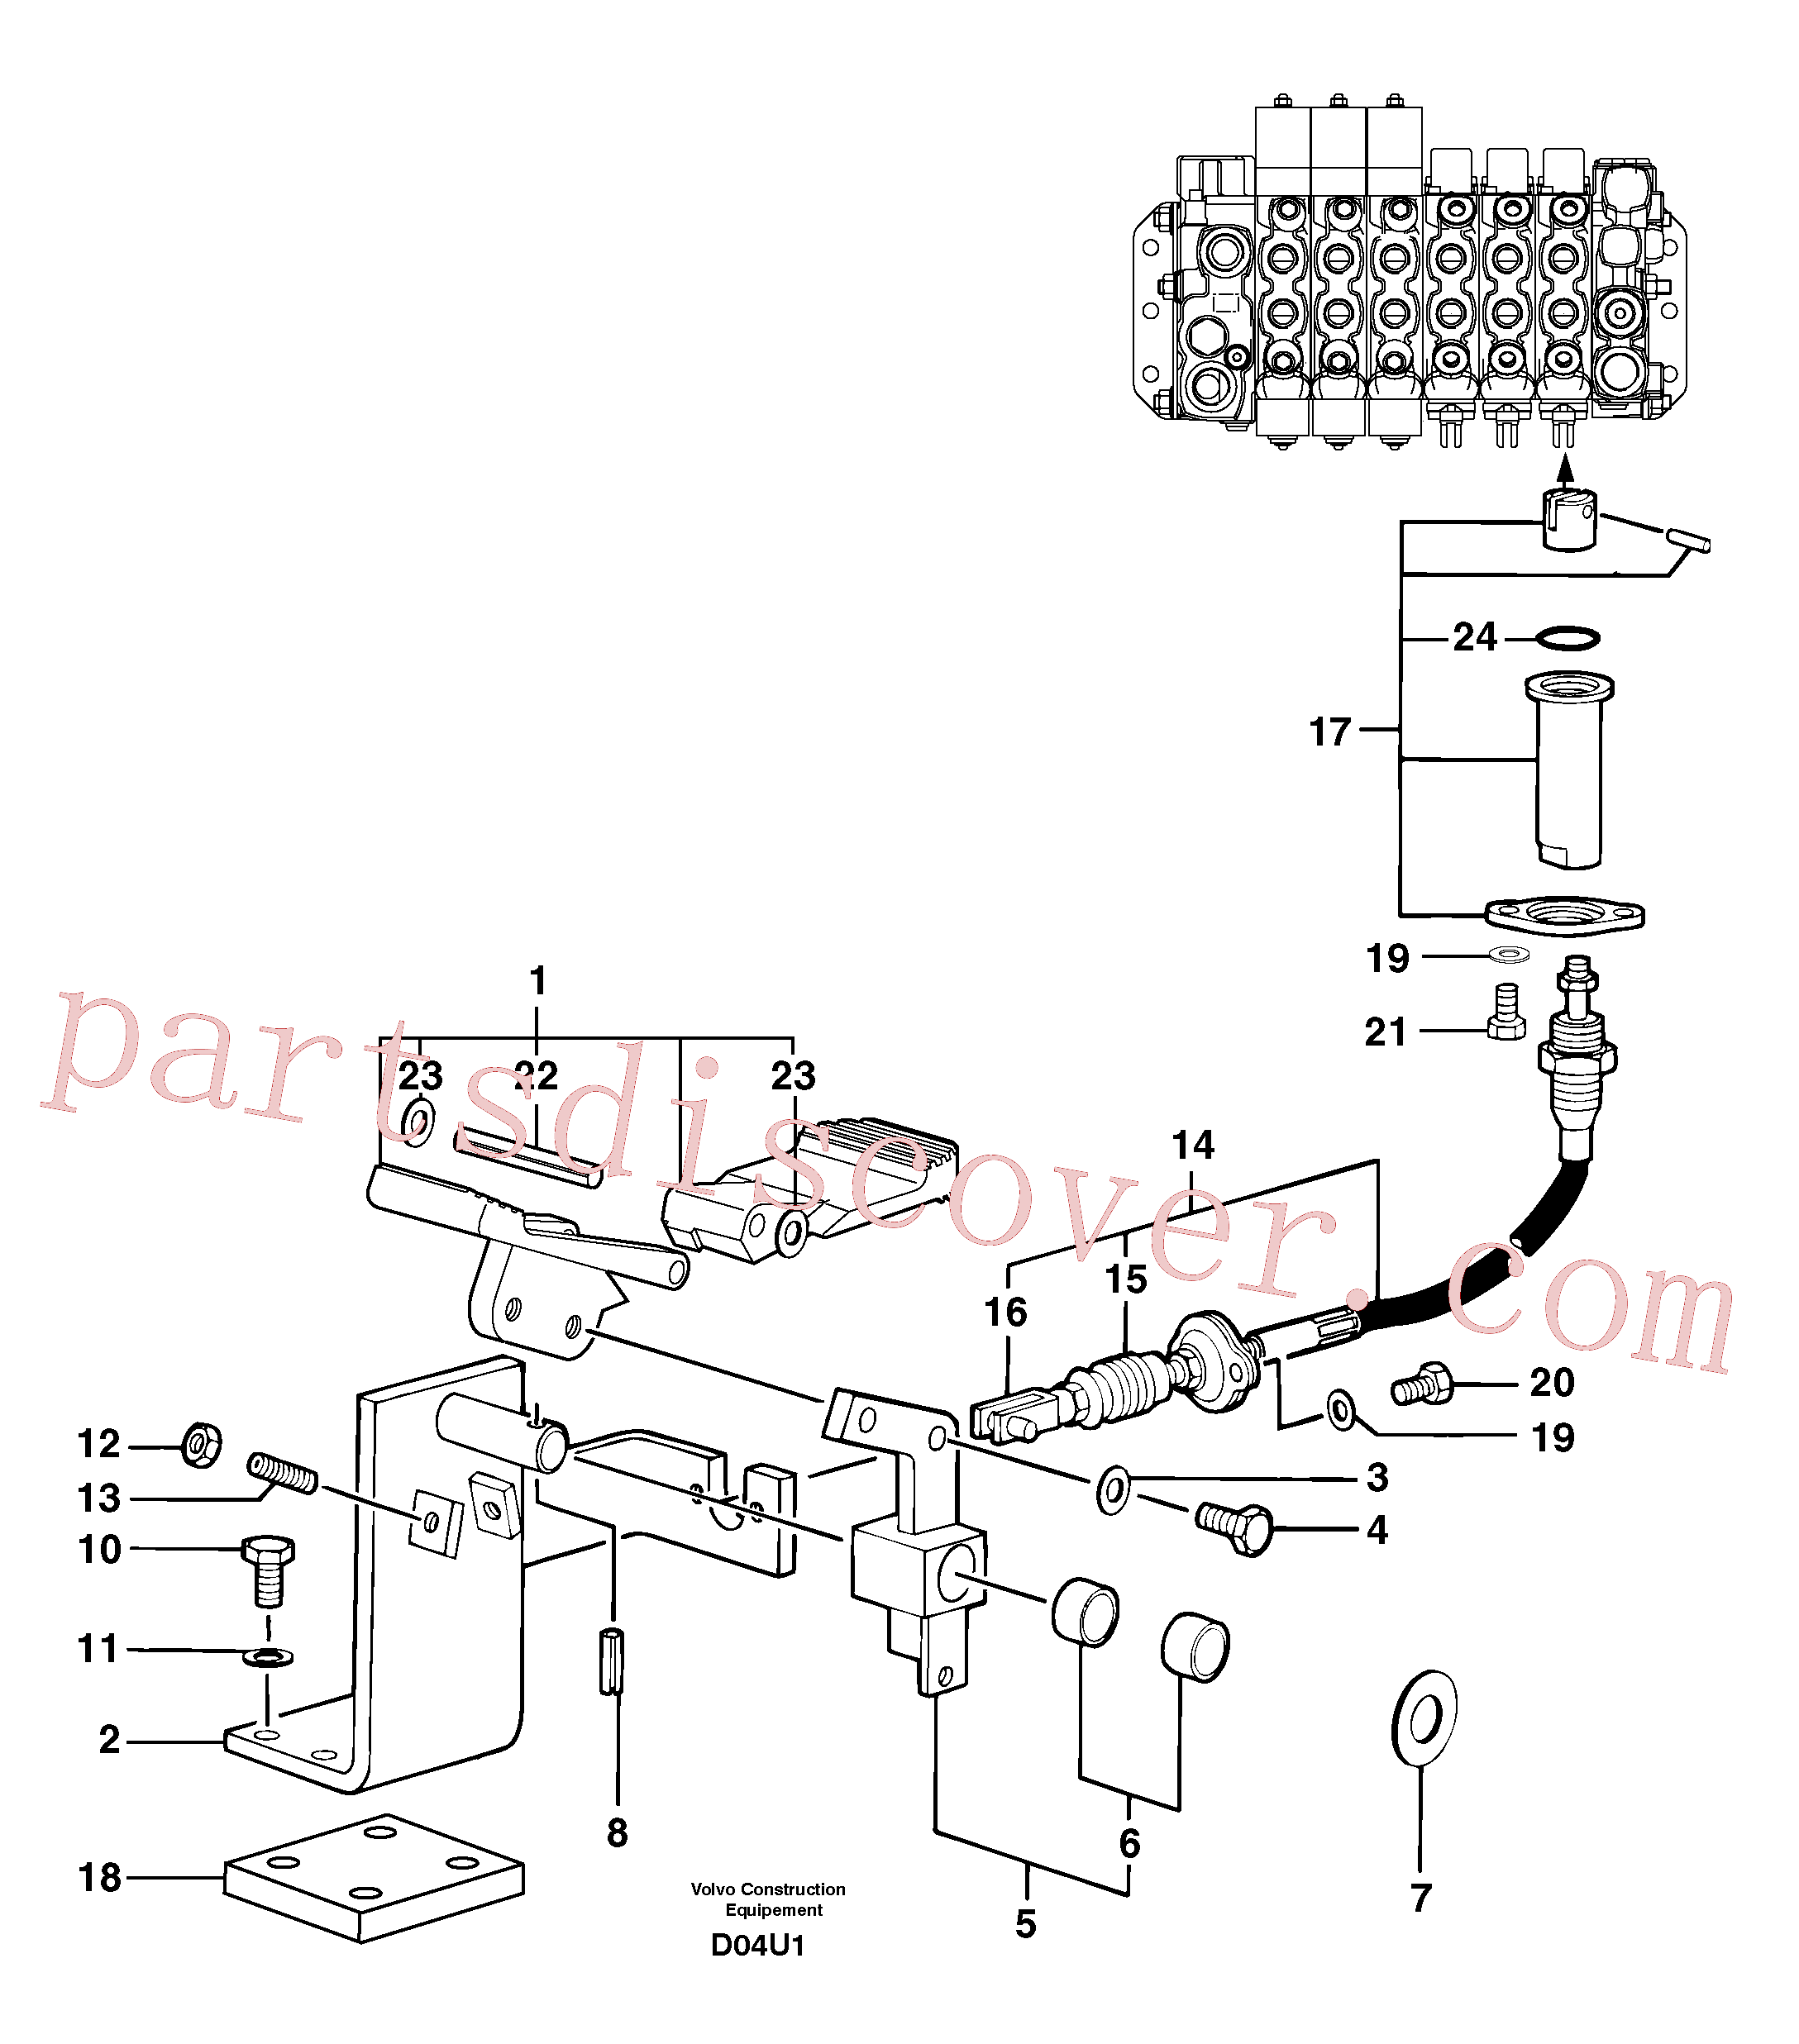 PJ7416654 for Volvo Control pedal : accessories on attachment - 90 l/m(D04U1 assembly)